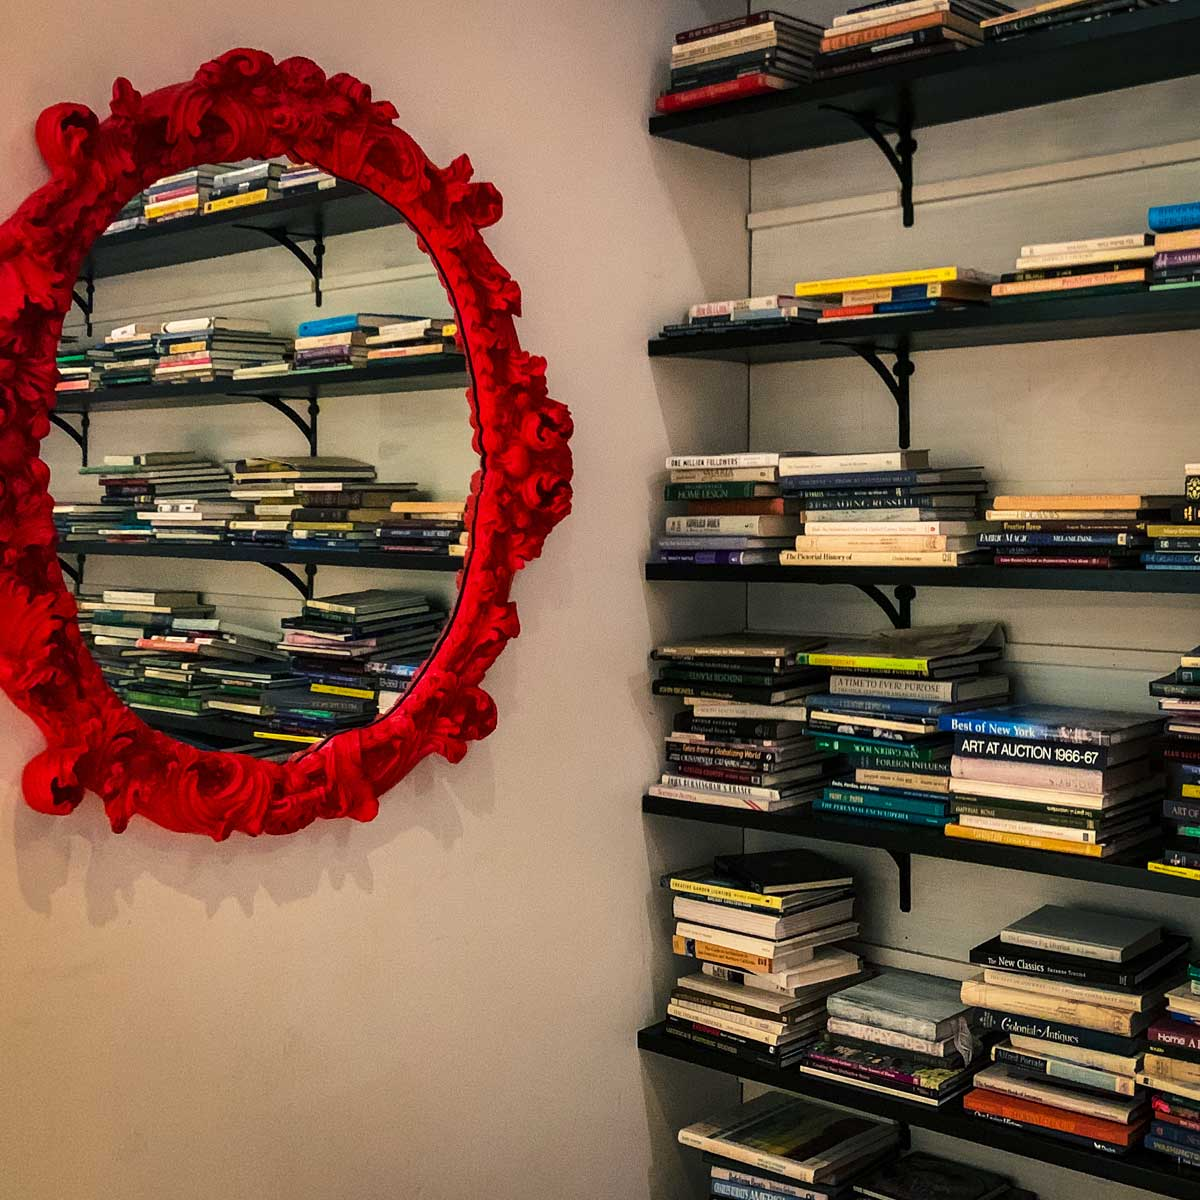 Cool red mirror and books at the Kimpton Brice Hotel